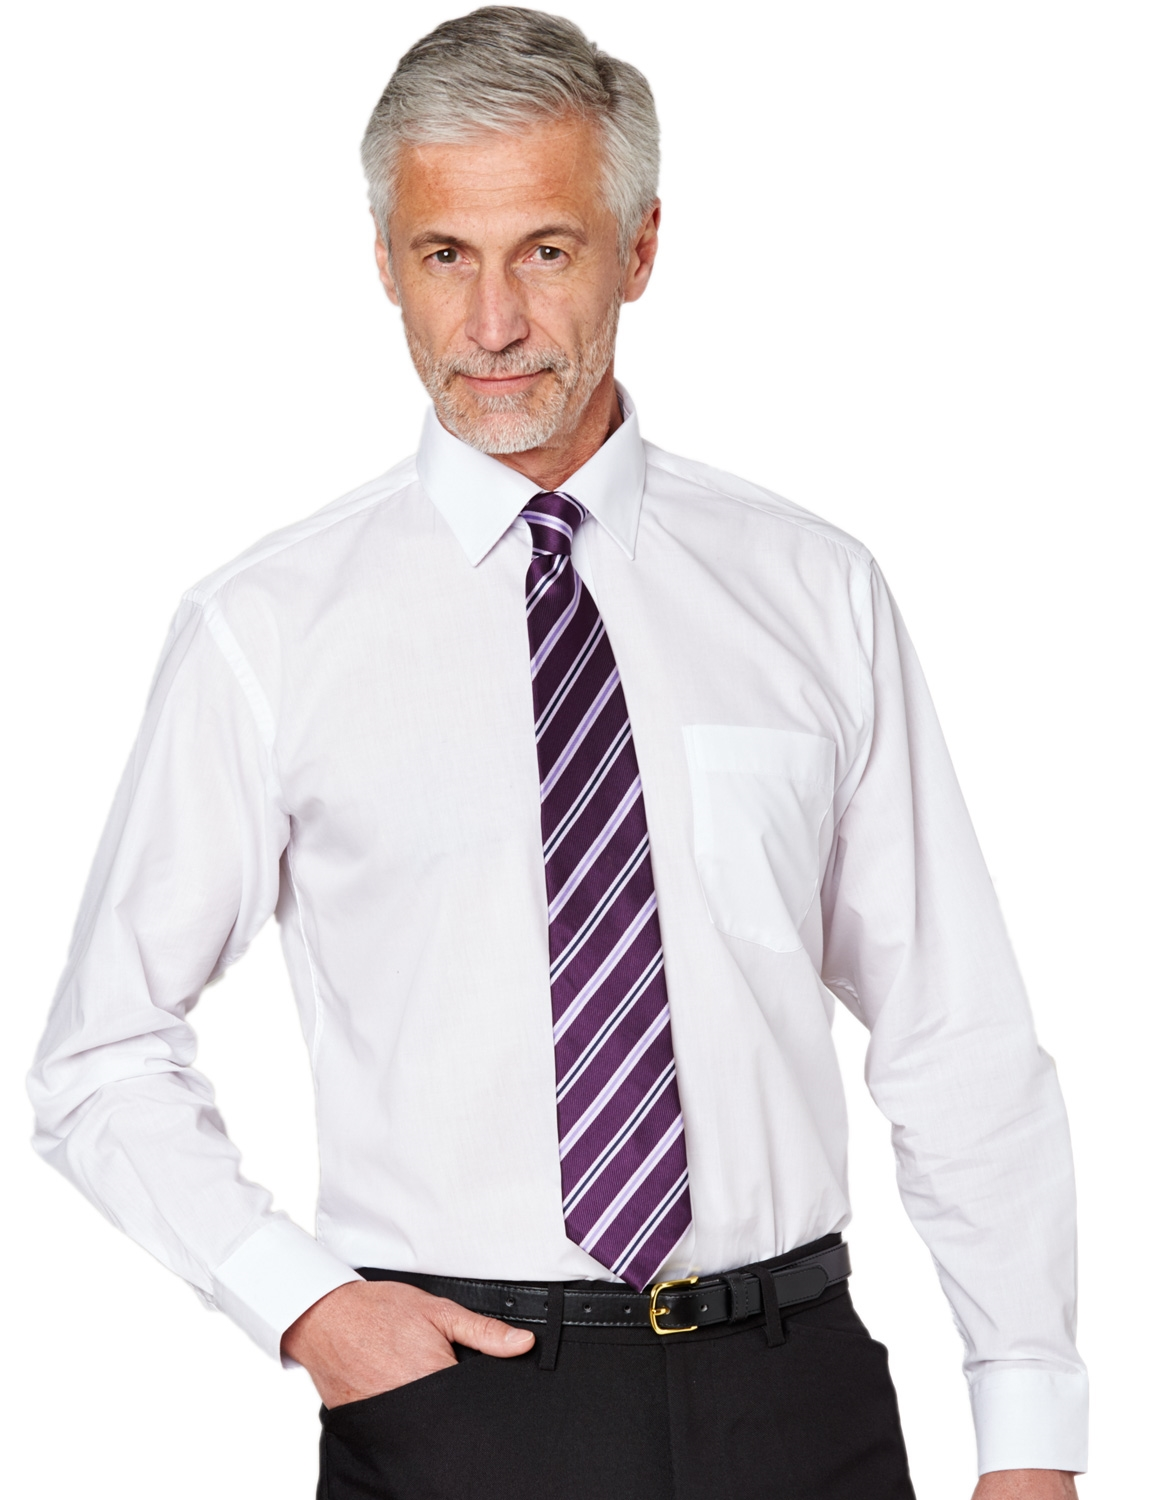 Tootal Shirt And Tie Set Menswear Shirts Tops